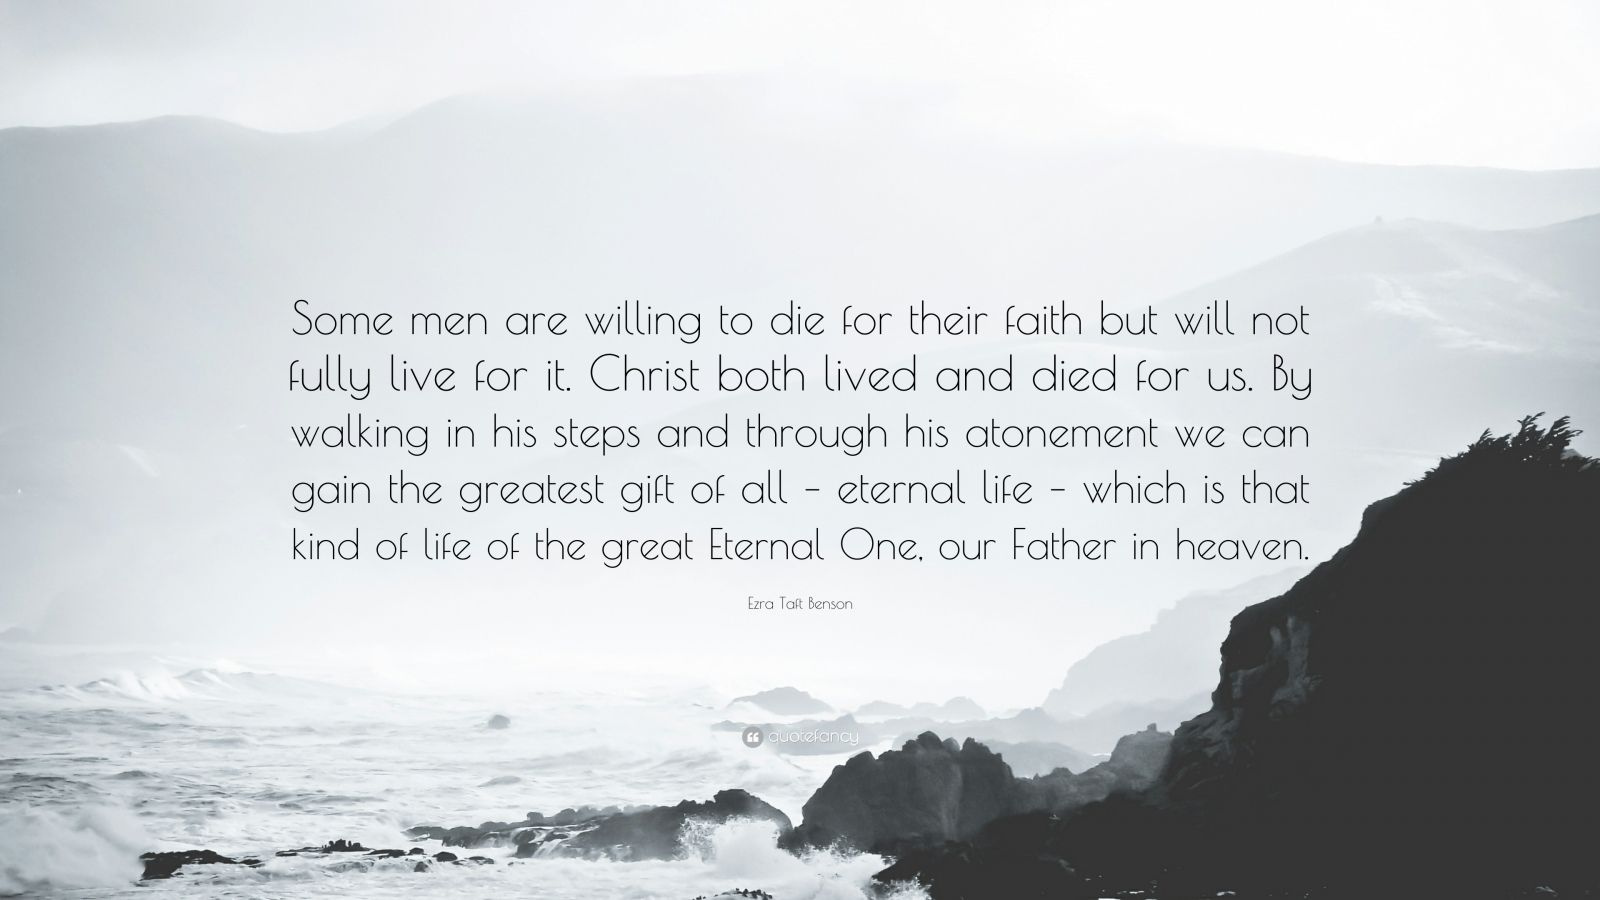 """Ezra Taft Benson Quote: """"Some men are willing to die for their faith but will not fully live for it. Christ both lived and died for us. By walking in his steps and through his atonement we can gain the greatest gift of all – eternal life – which is that kind of life of the great Eternal One, our Father in heaven."""""""